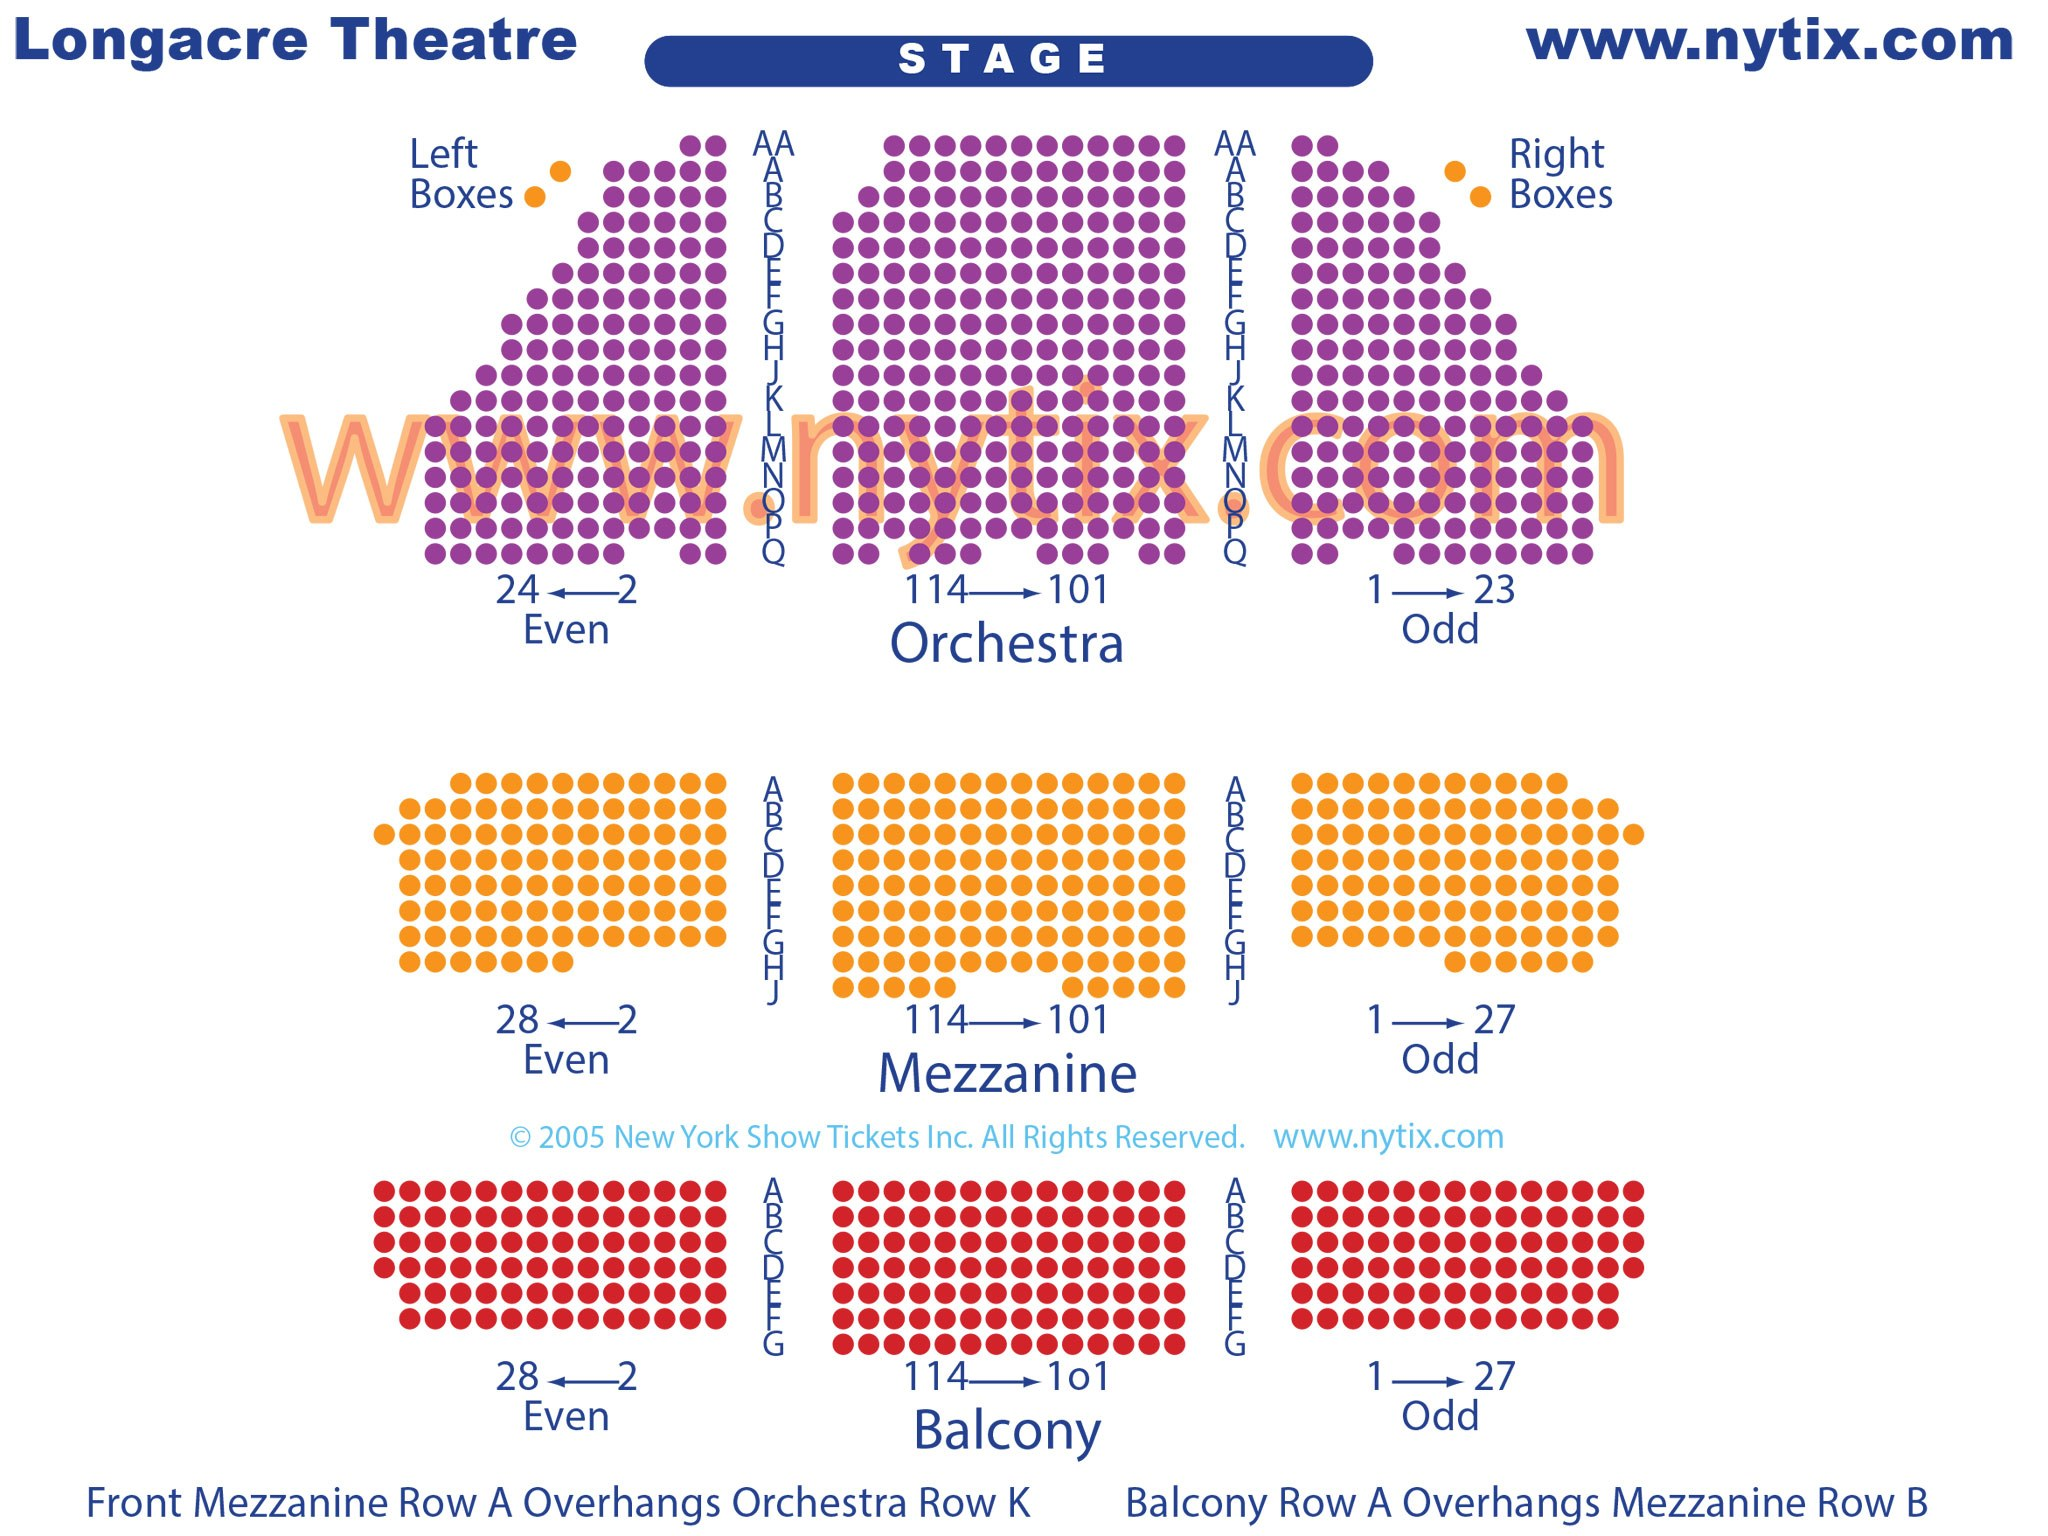 Broadway Longacre Seating Chart